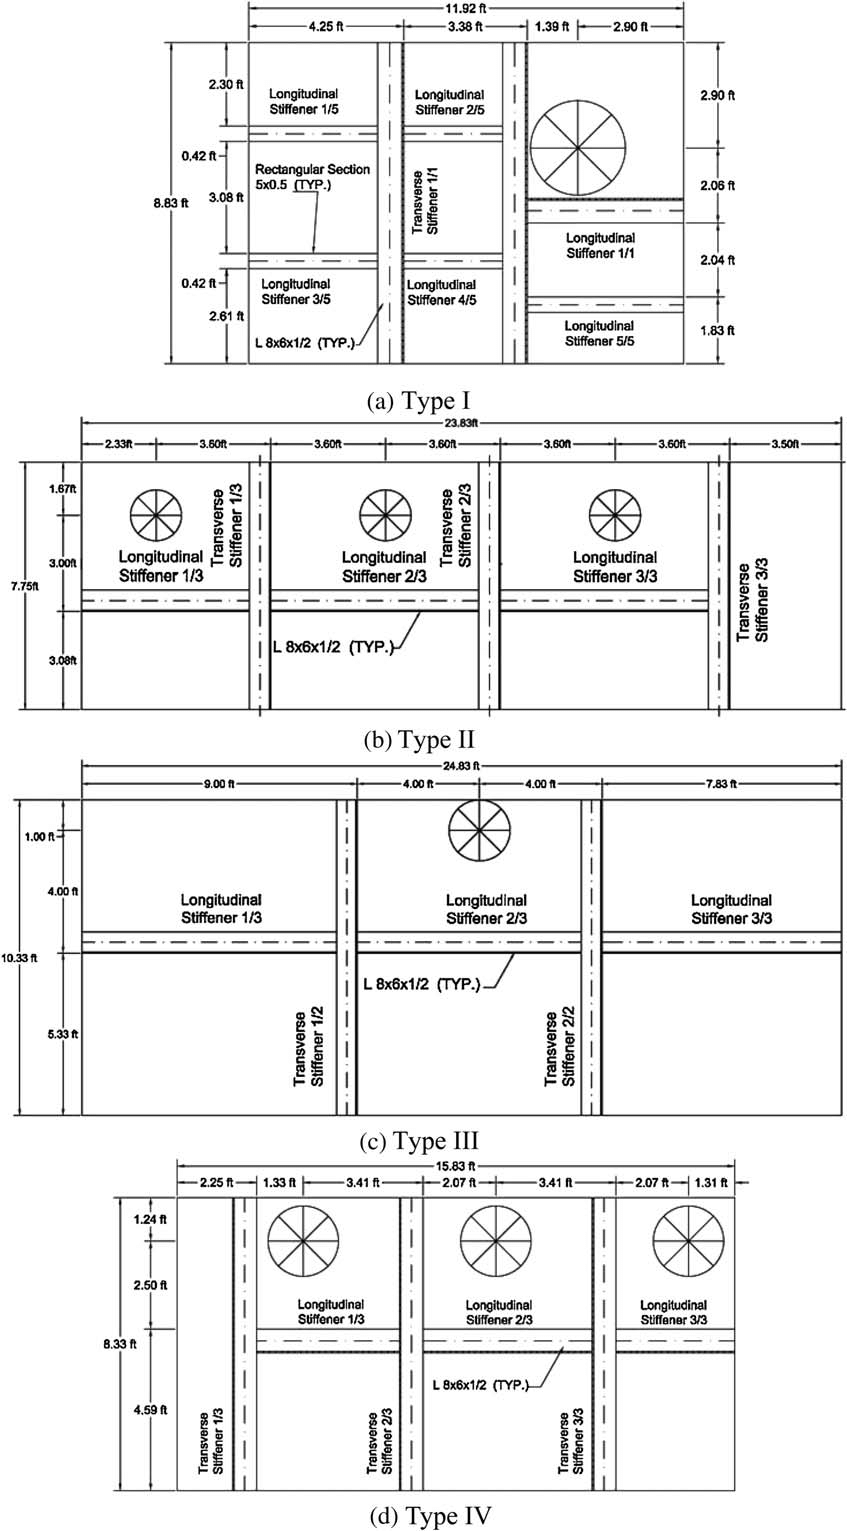 hight resolution of plan view of transformer bushing models showing the location of flexural stiffeners on the tank